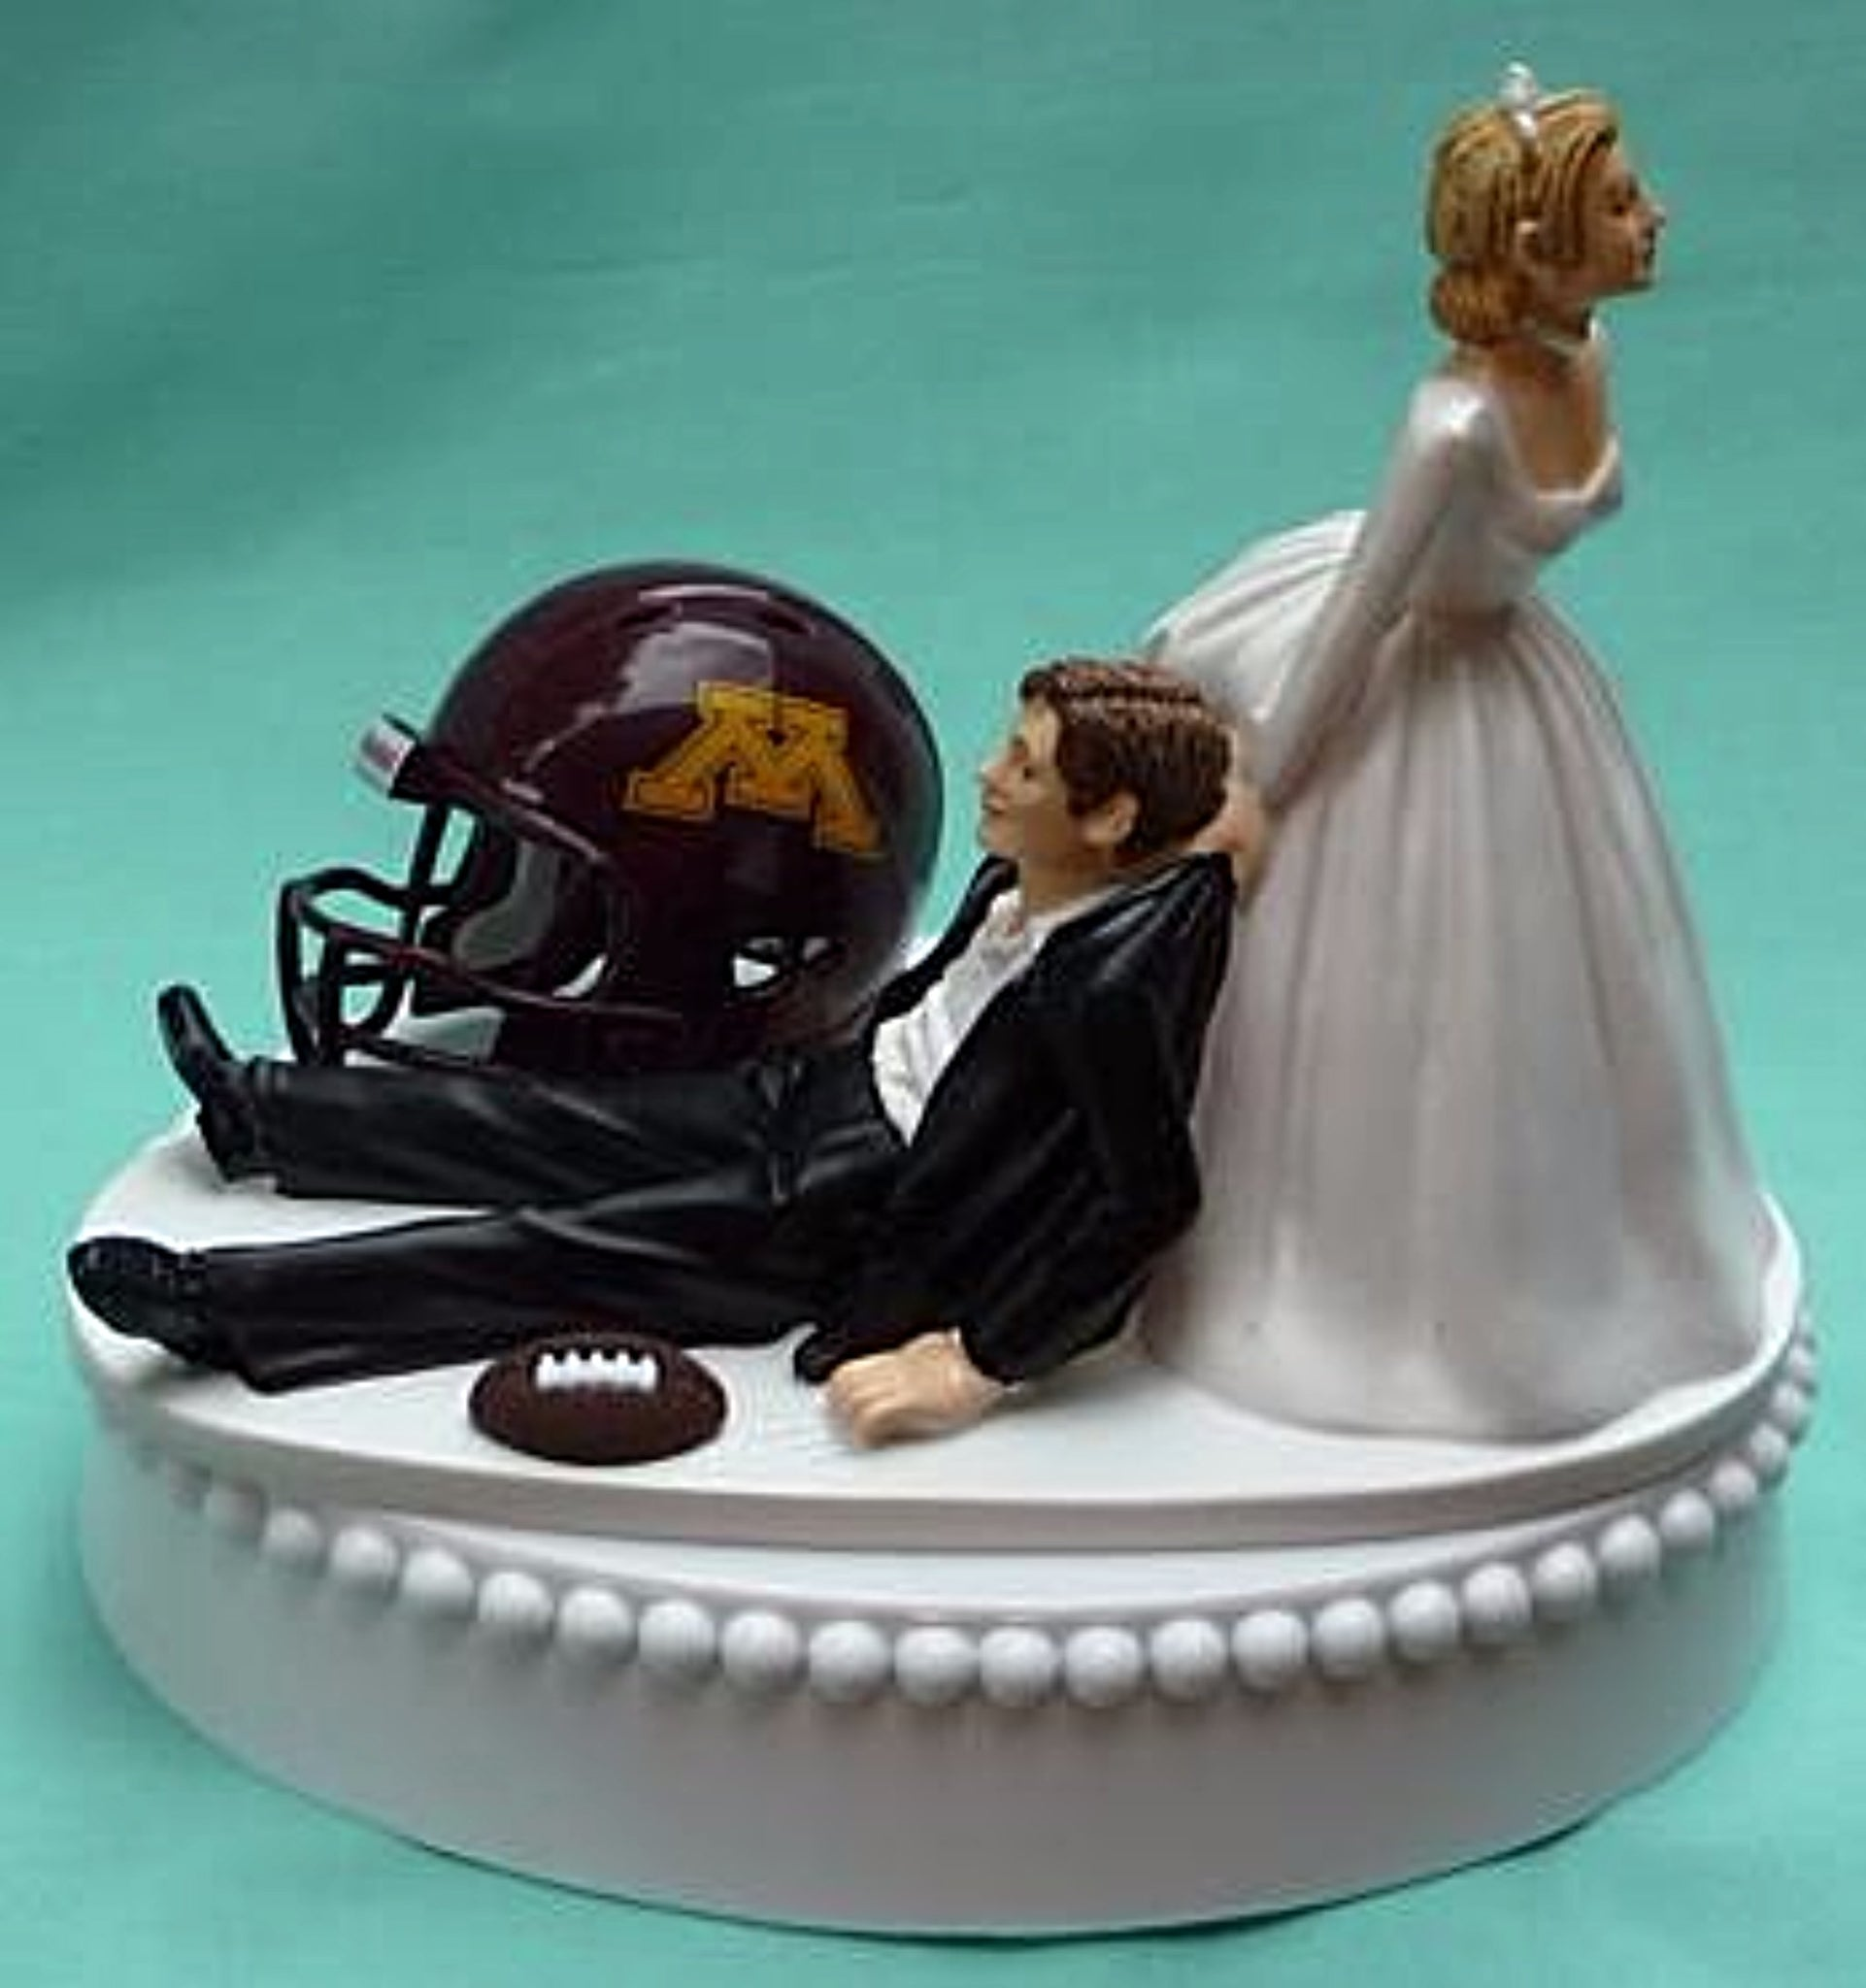 University of Minnesota wedding cake topper Golden Gophers football groom's cake top sports fans funny humorous bride drags groom reception gift Fun Wedding Things